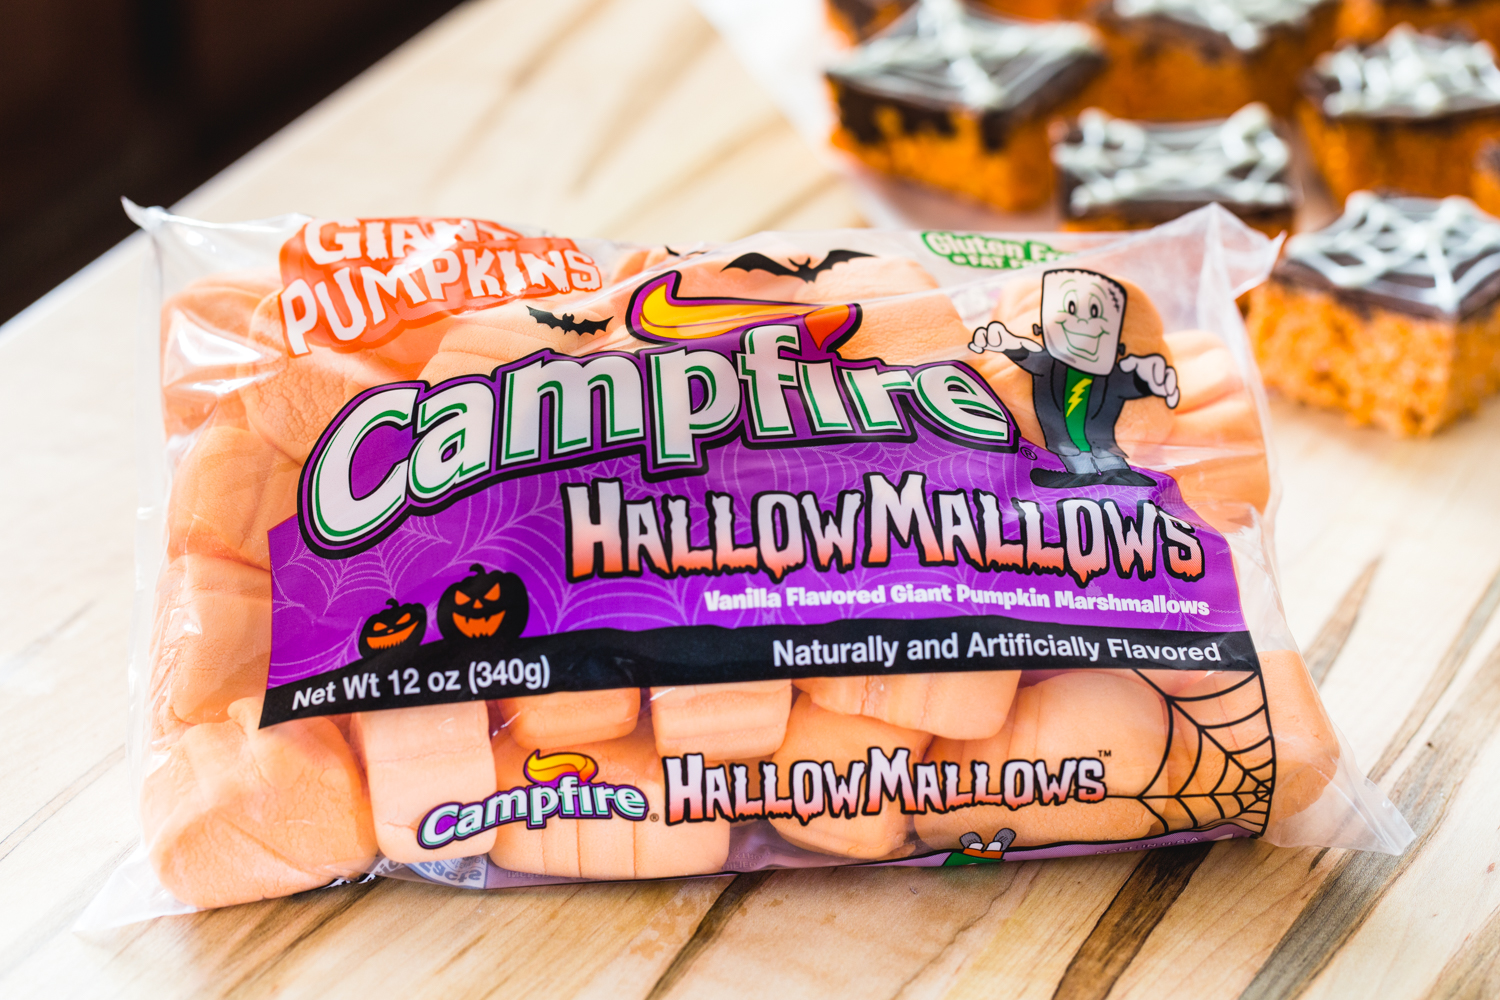 Spider Web Cereal Treats made with Campfire HallowMallows